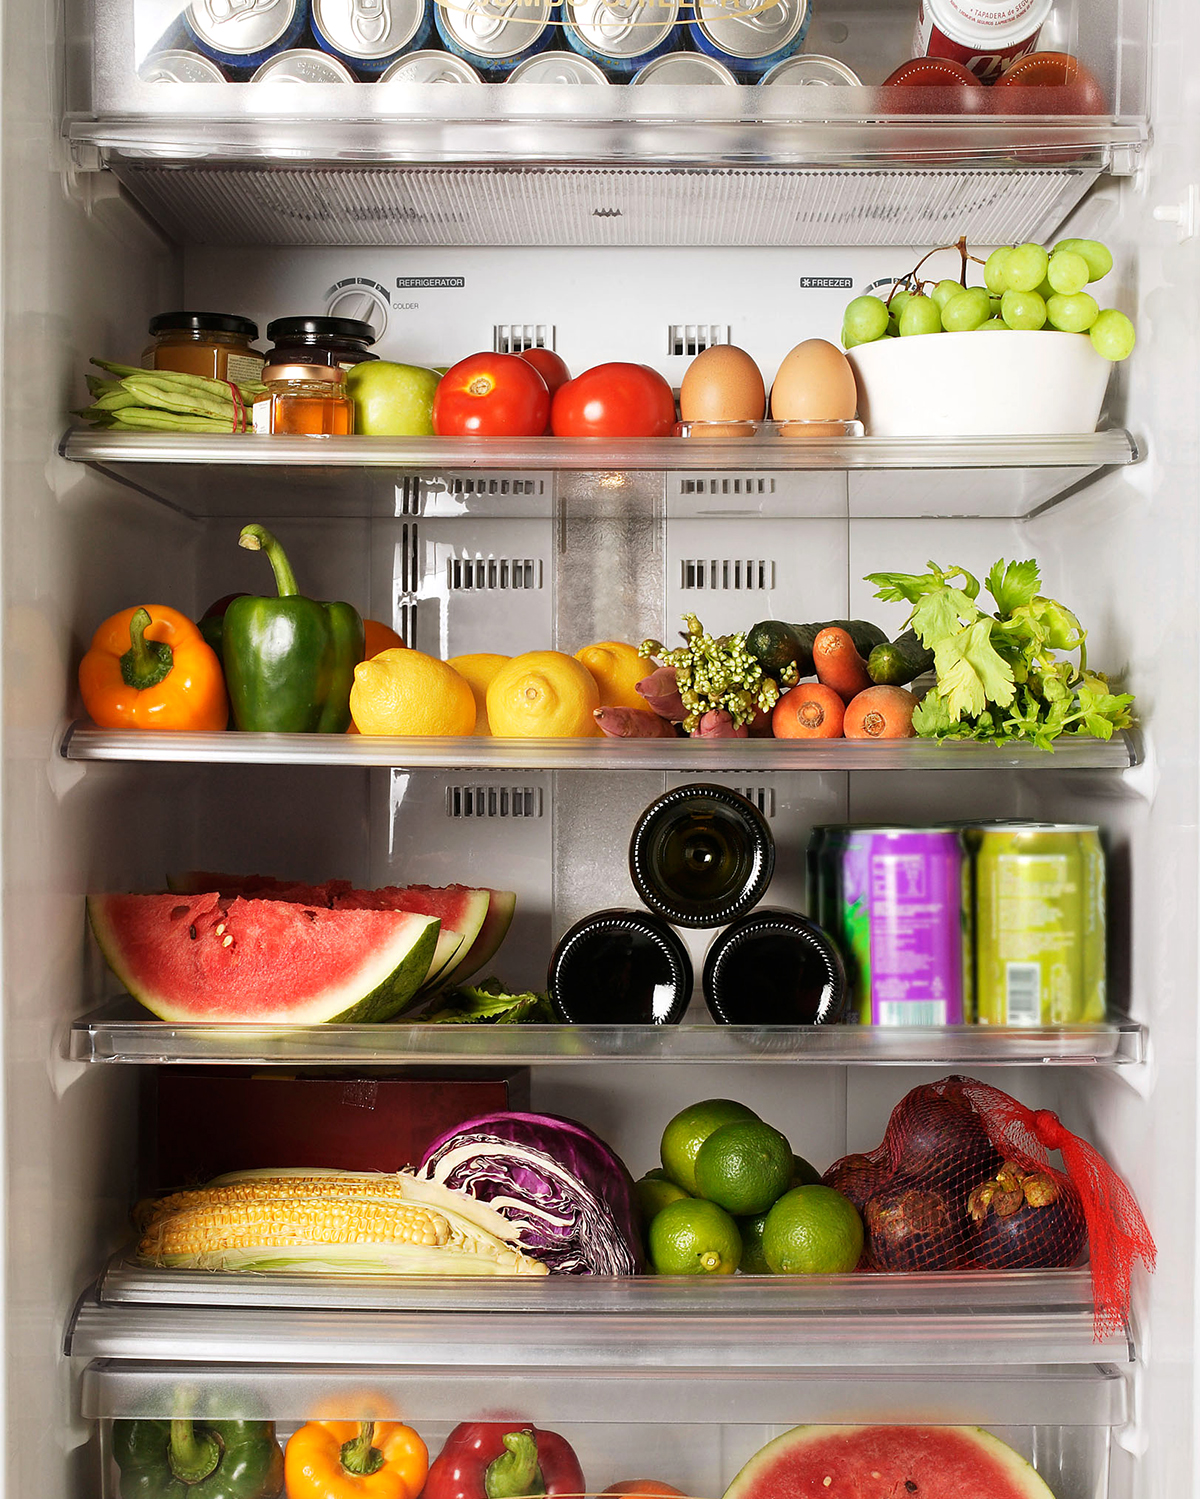 fridge filled with fresh produce and drinks